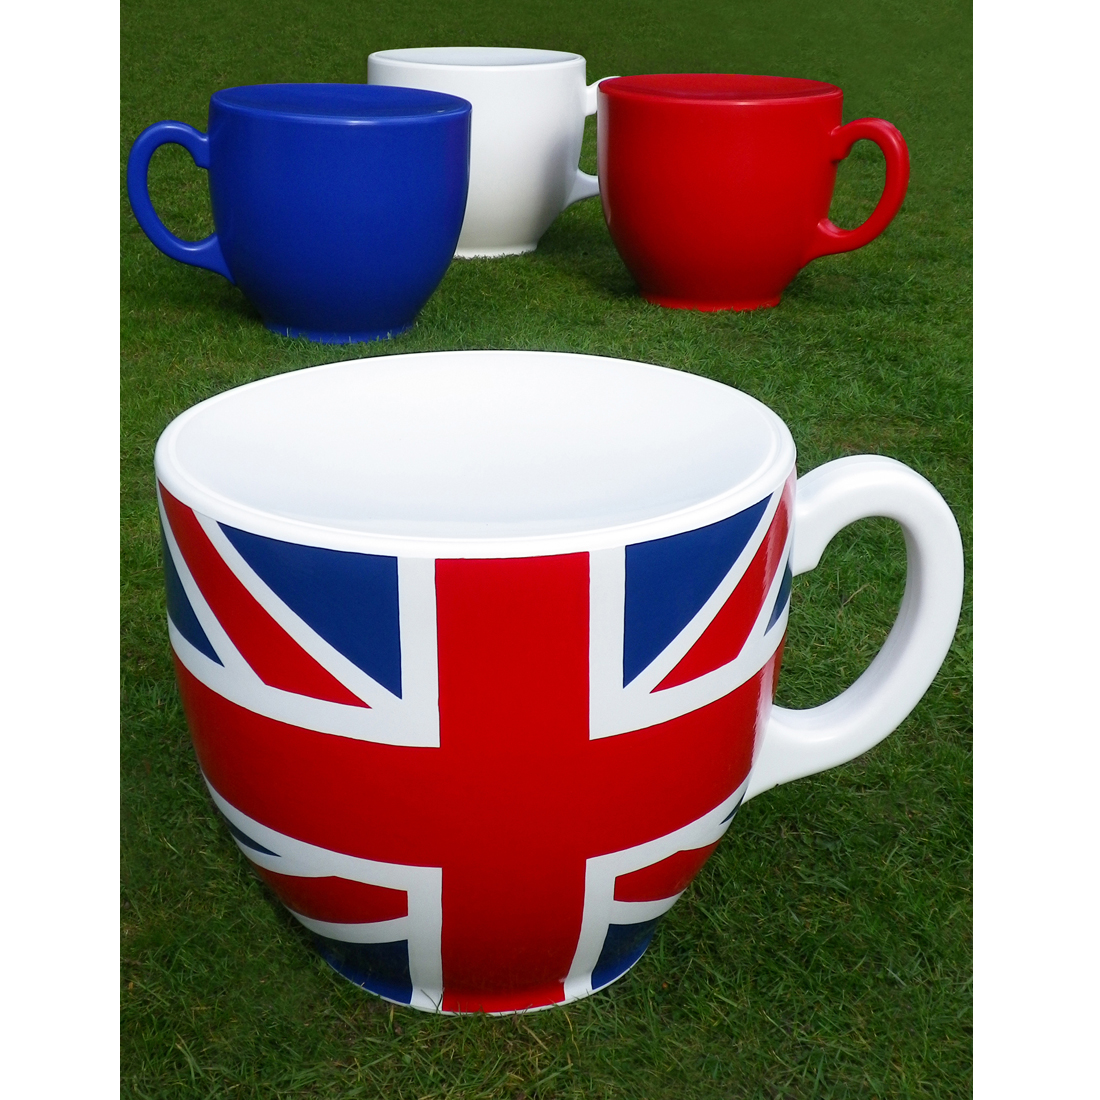 tea-cup-stool-union-jack Palmer Home Furniture on hammary furniture, oriental style furniture, palmer home christmas cards, laura ashley furniture, tiger wood furniture, vermont tubbs furniture, palmer home chest of drawers, rustic furniture, broyhill furniture, palmer leather couch, south sea rattan furniture, woolrich furniture, palmer house bedroom furniture, arnold palmer furniture, henkel harris furniture, palmer design,